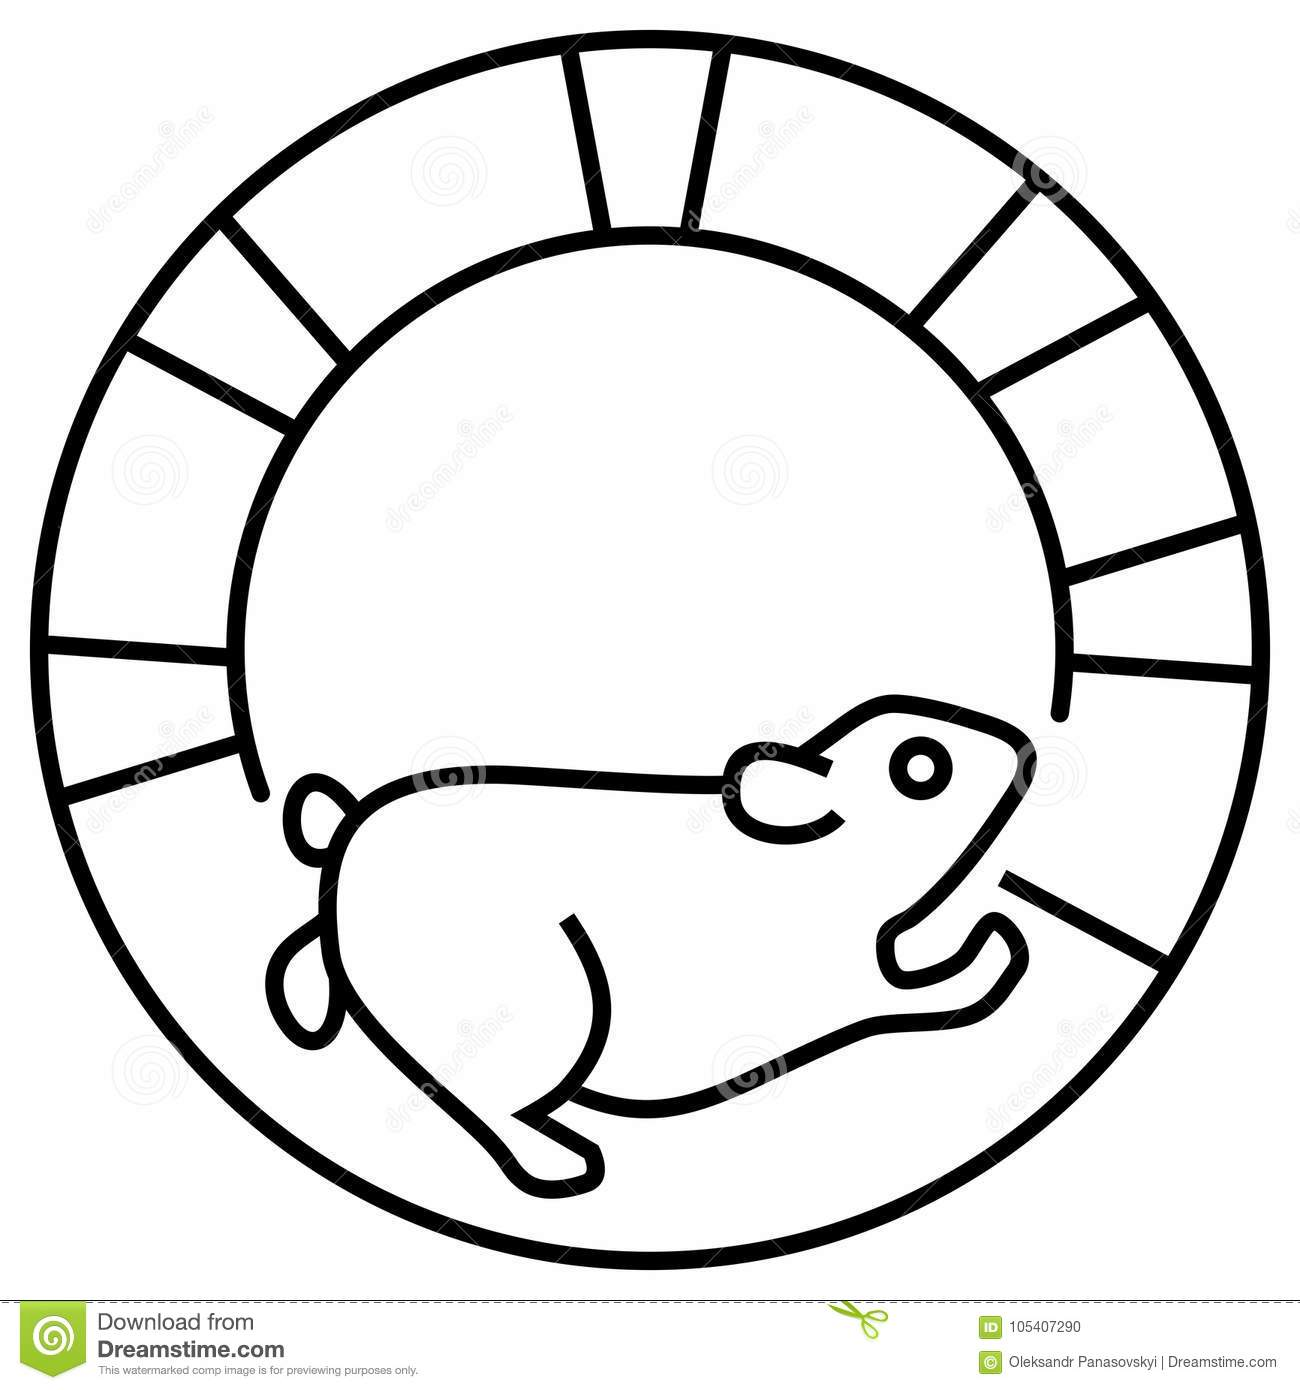 hamster running on a track, getting a workout on spinning wheel